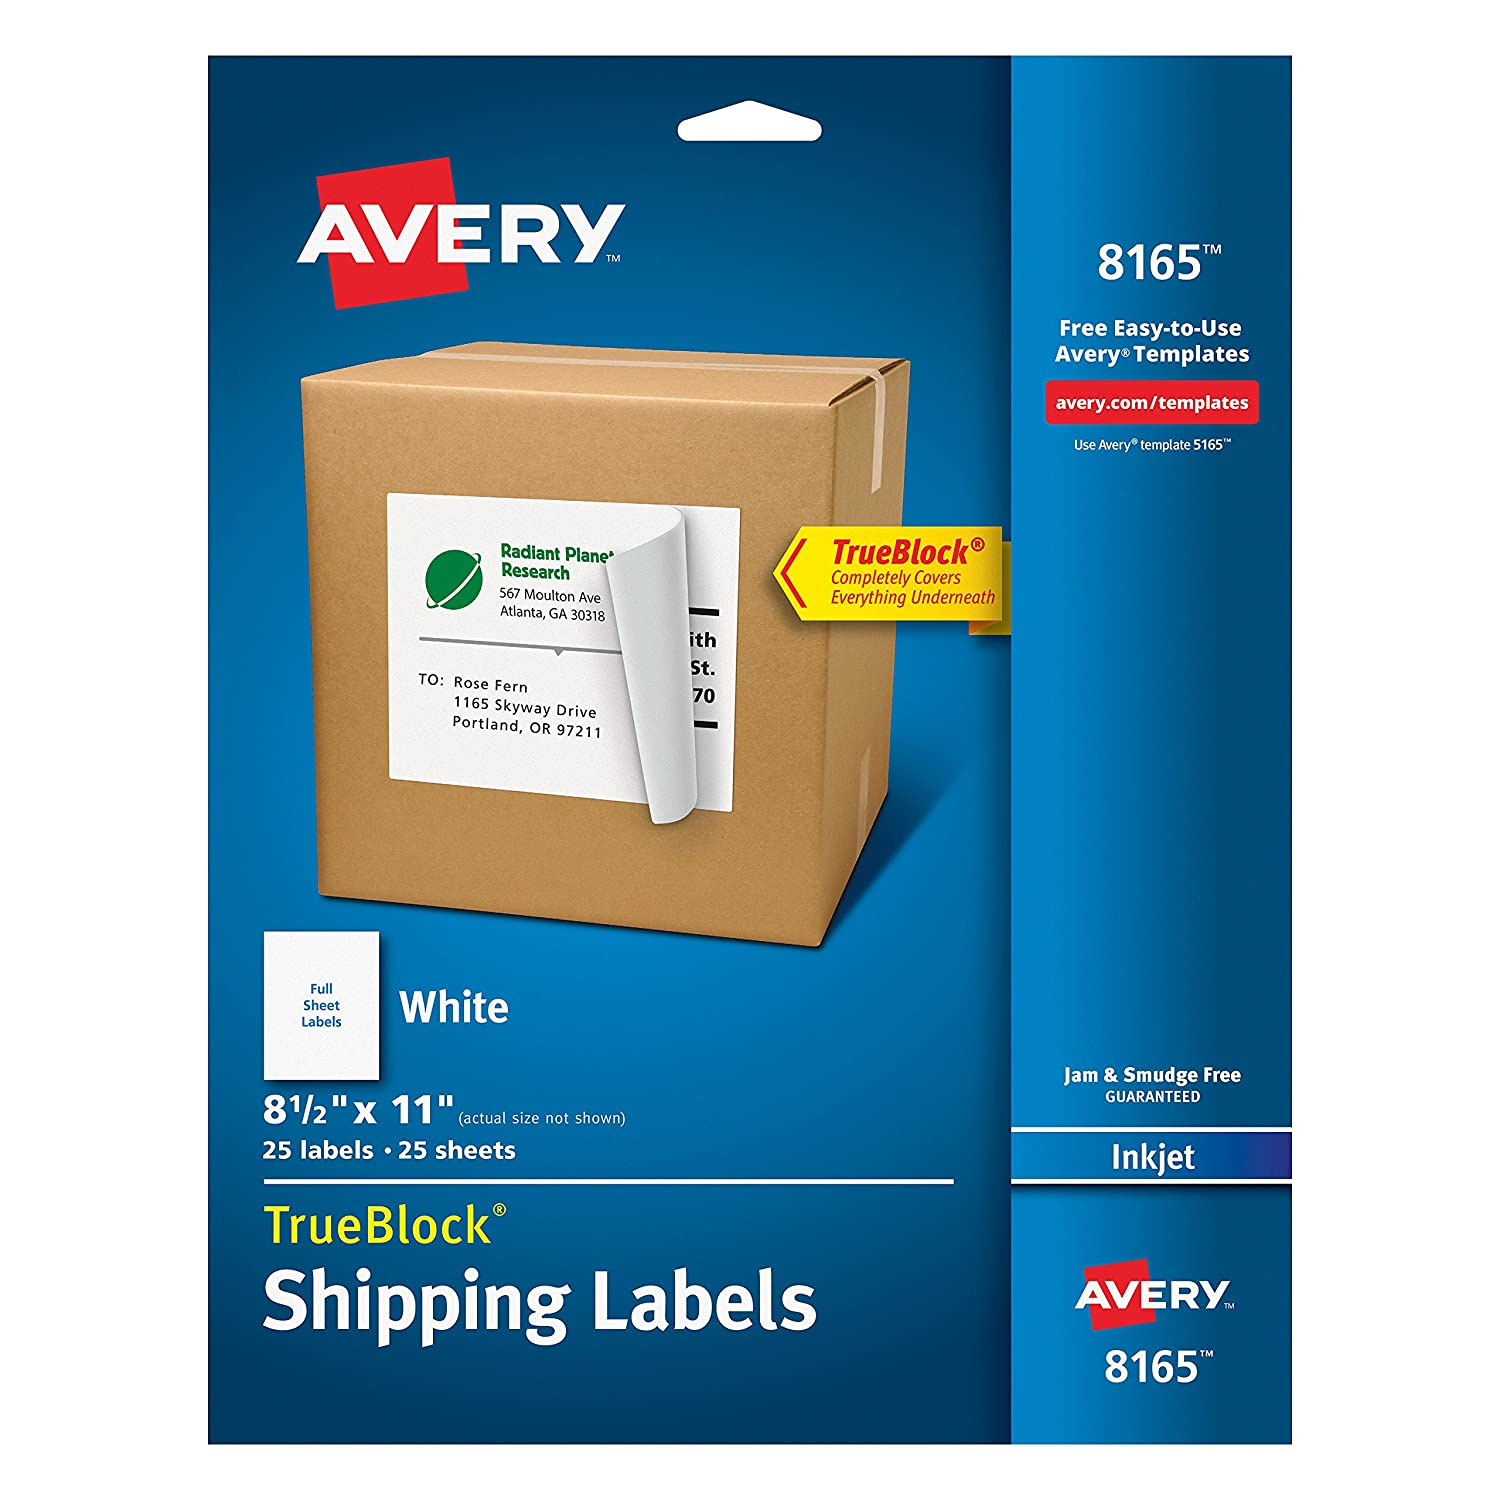 ed61a172aa13 Avery Shipping Address Labels, Inkjet Printers, 25 Labels, Full Sheet  Labels, Permanent Adhesive, TrueBlock (8165), White